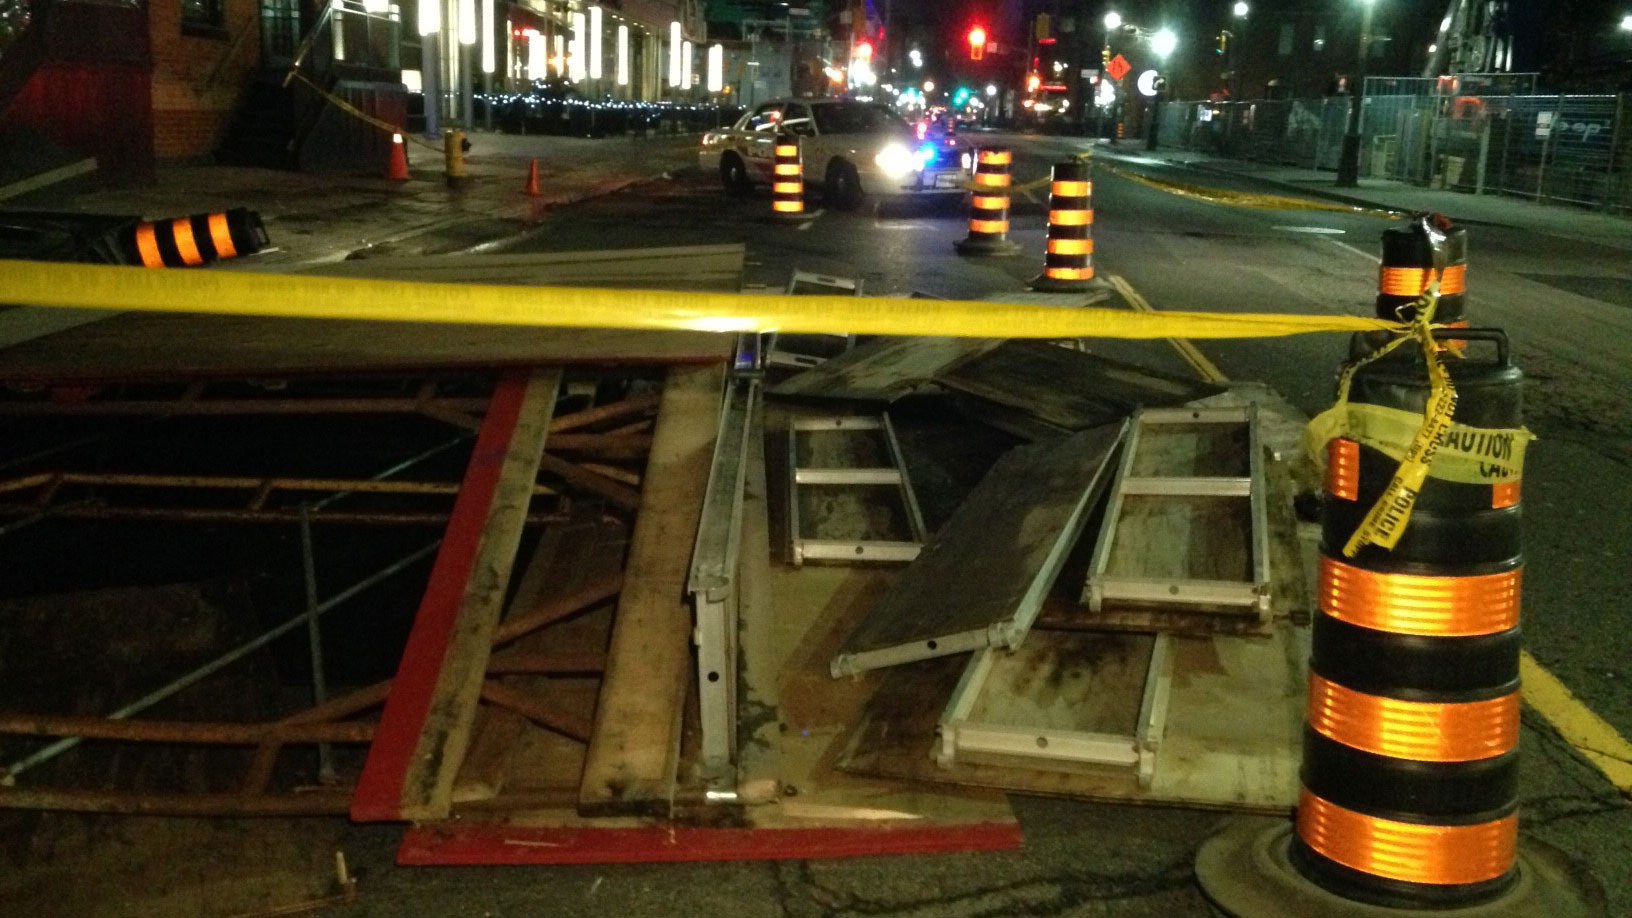 Construction material collapses at King and John streets scattering debris on the roadway and sidewalk on Jan. 11, 2017. CITYNEWS/Bertram Dandy